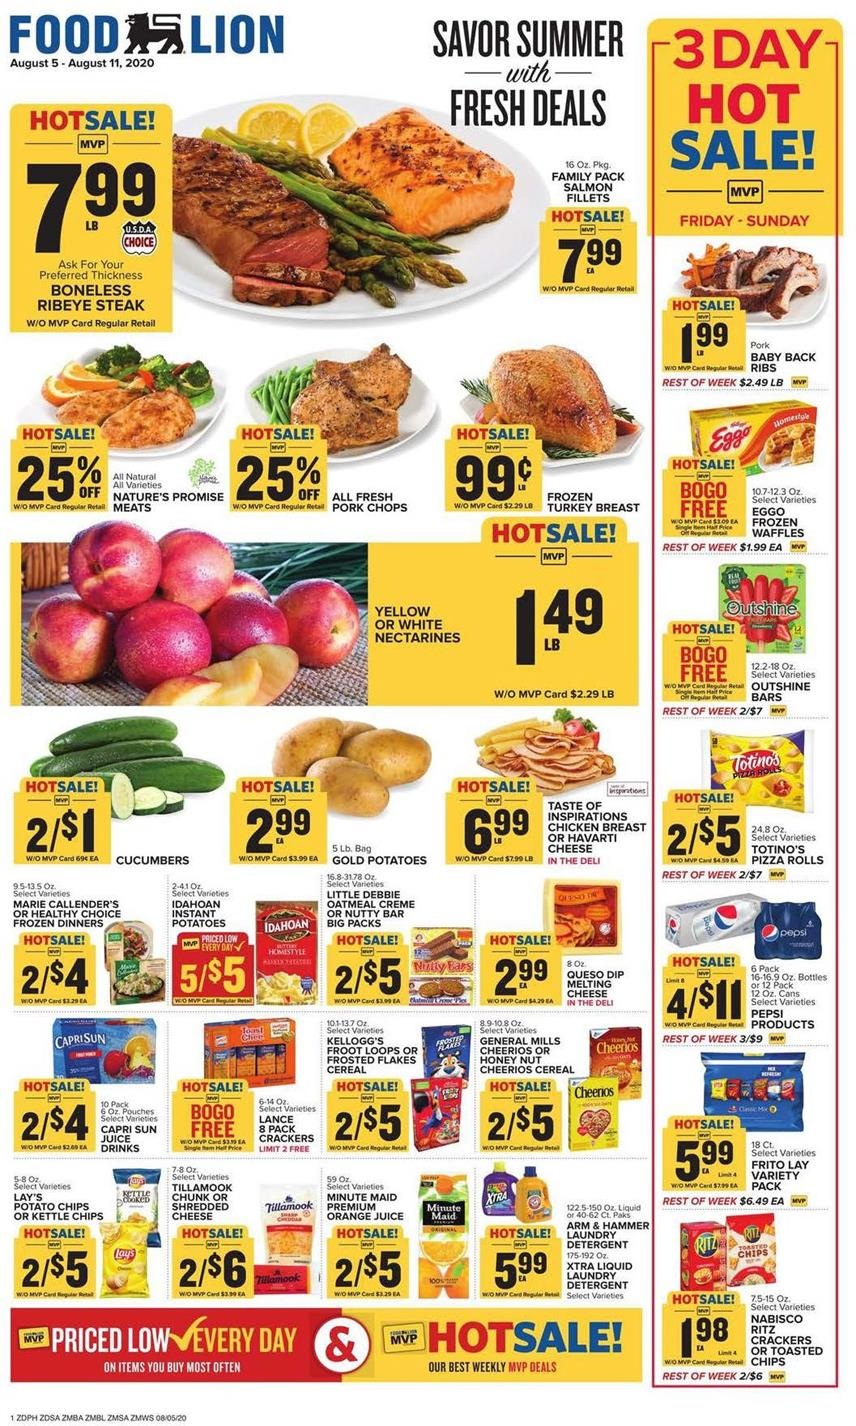 Food Lion August Weekly Ad valid from Aug 5 – 11, 2020